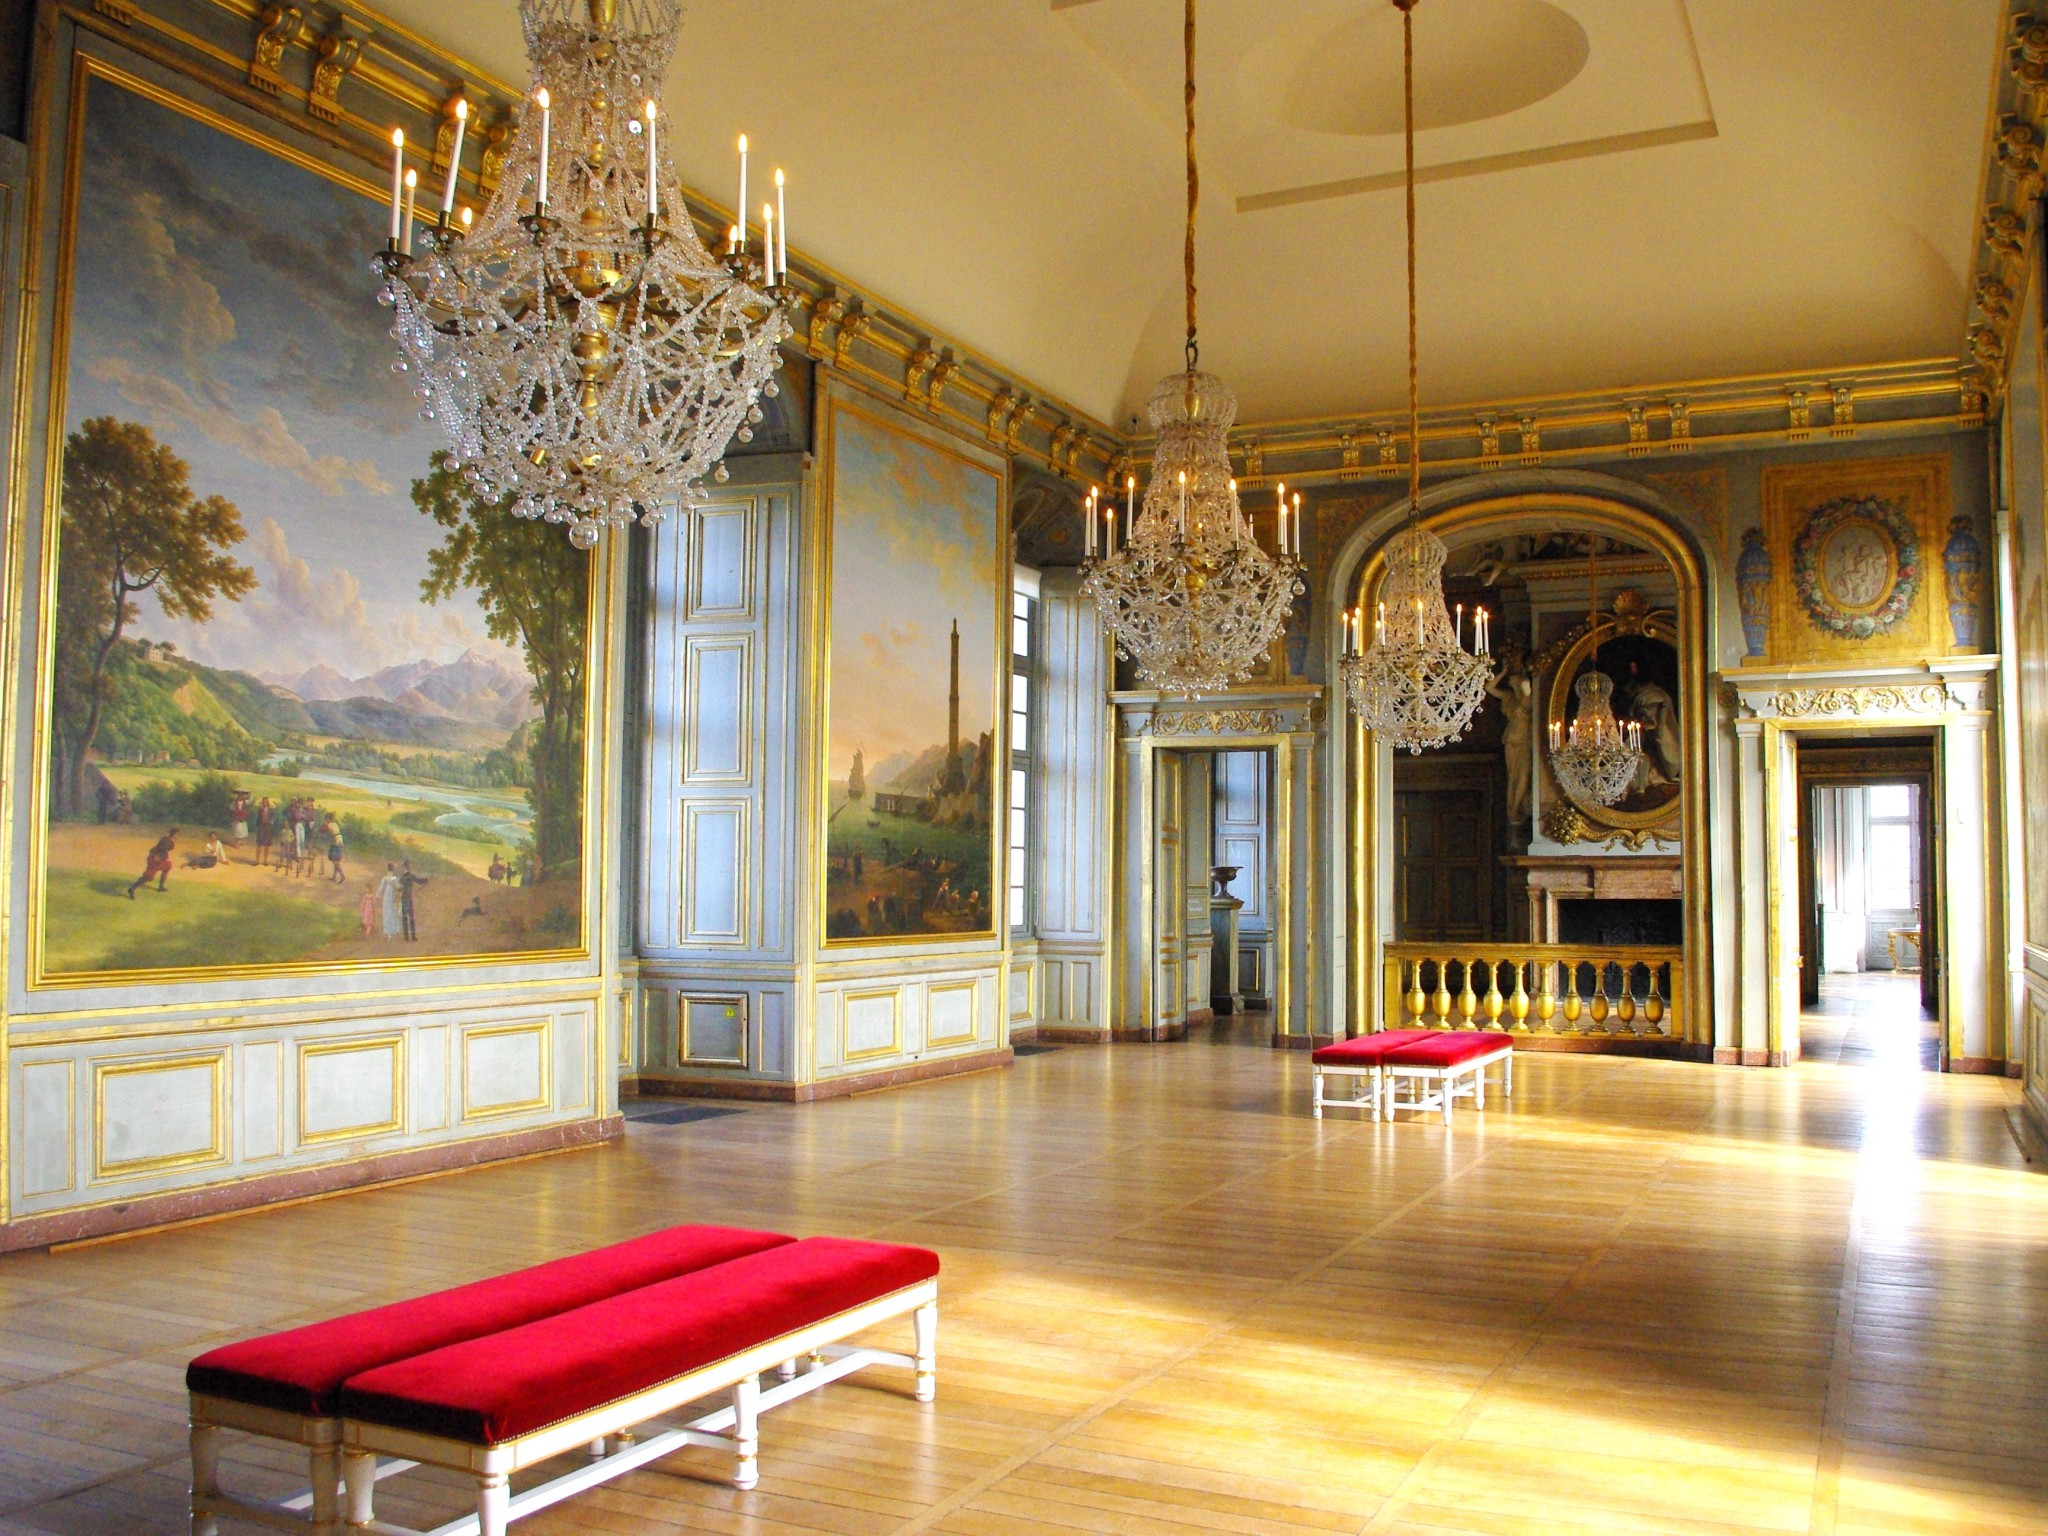 ... morning visit inside the chateau of Maisons-Laffitte - French Moments